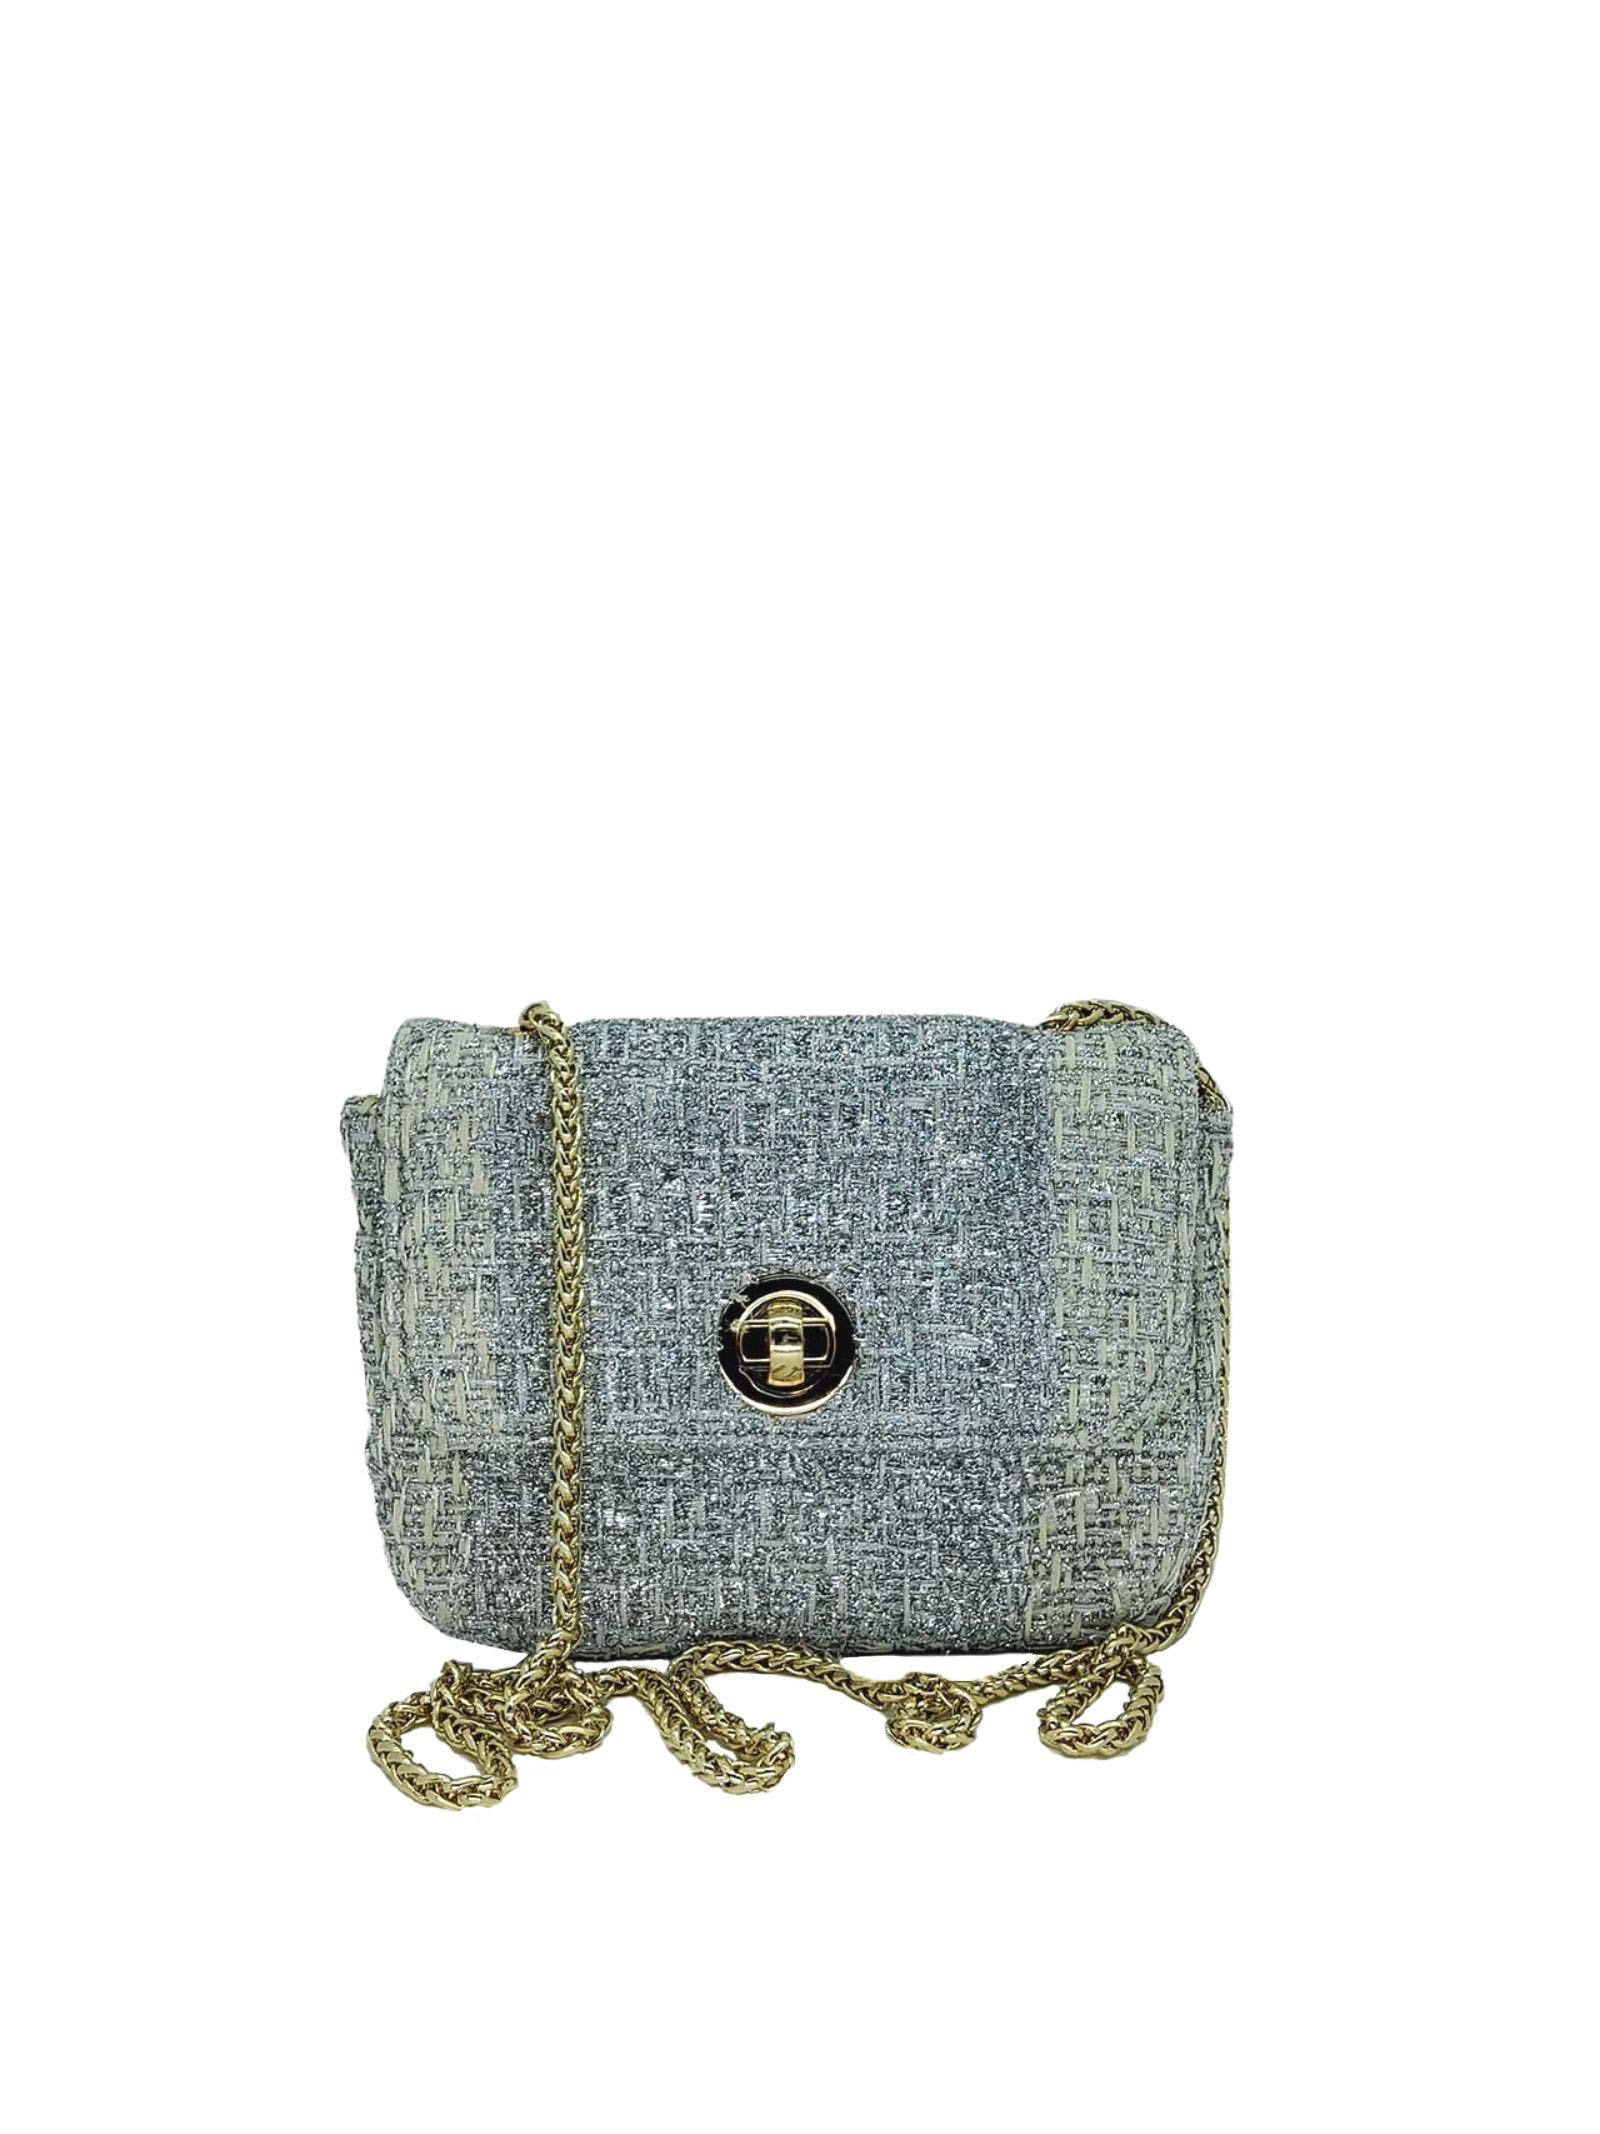 Women's Bags Clutch Bag in Silver Fabric with Gold Chain Kassiopea   Bags and backpacks   URIEL604